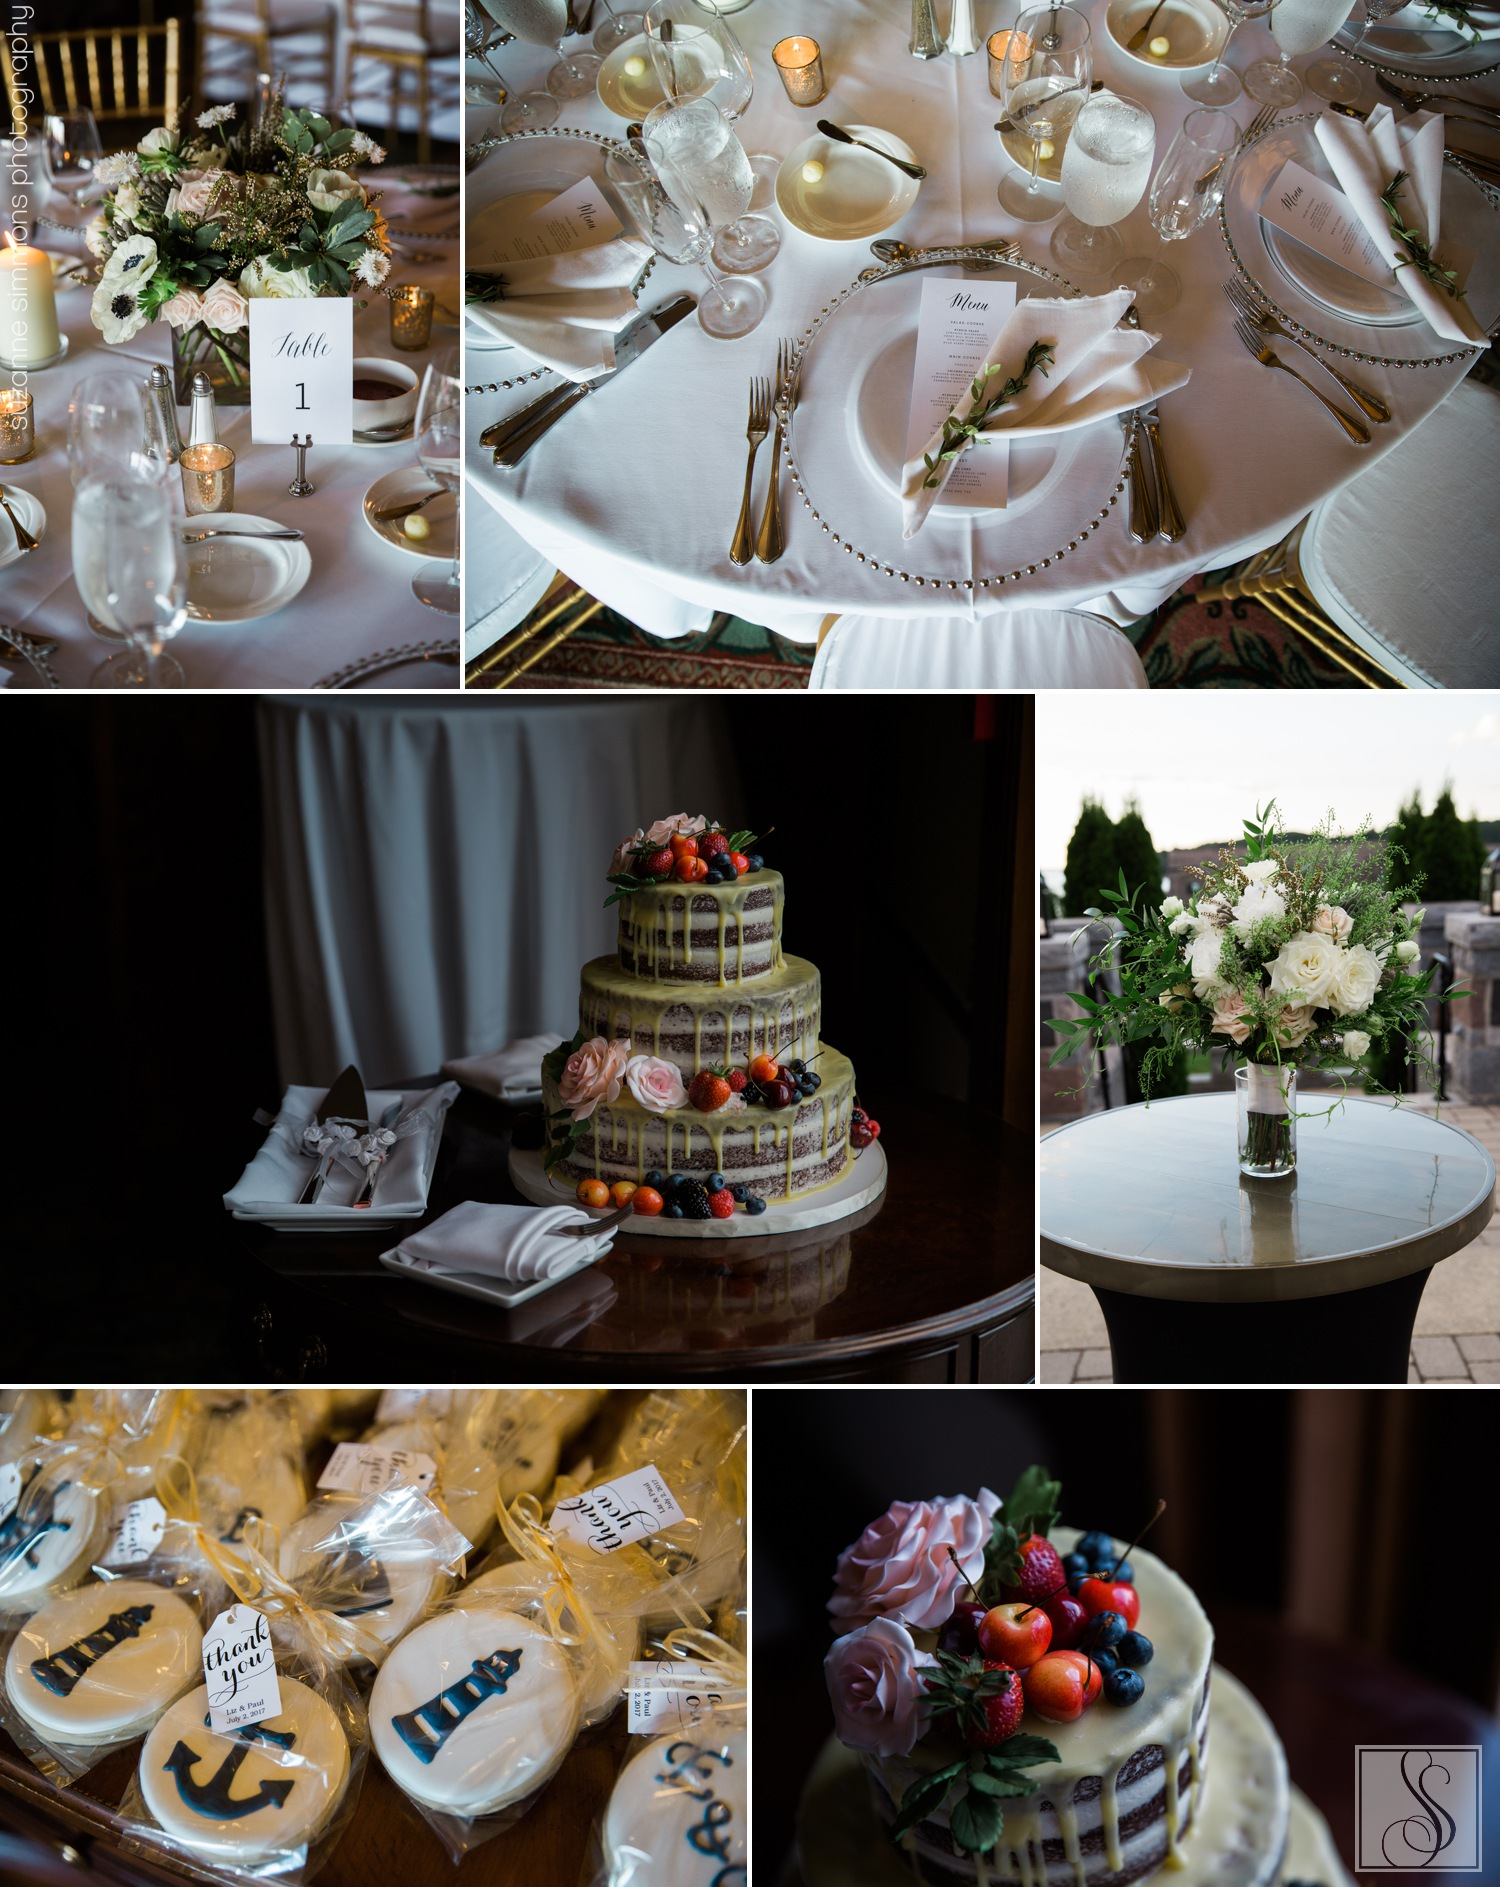 Wedding details at the Bar Harbor Club in Bar Harbor, Maine